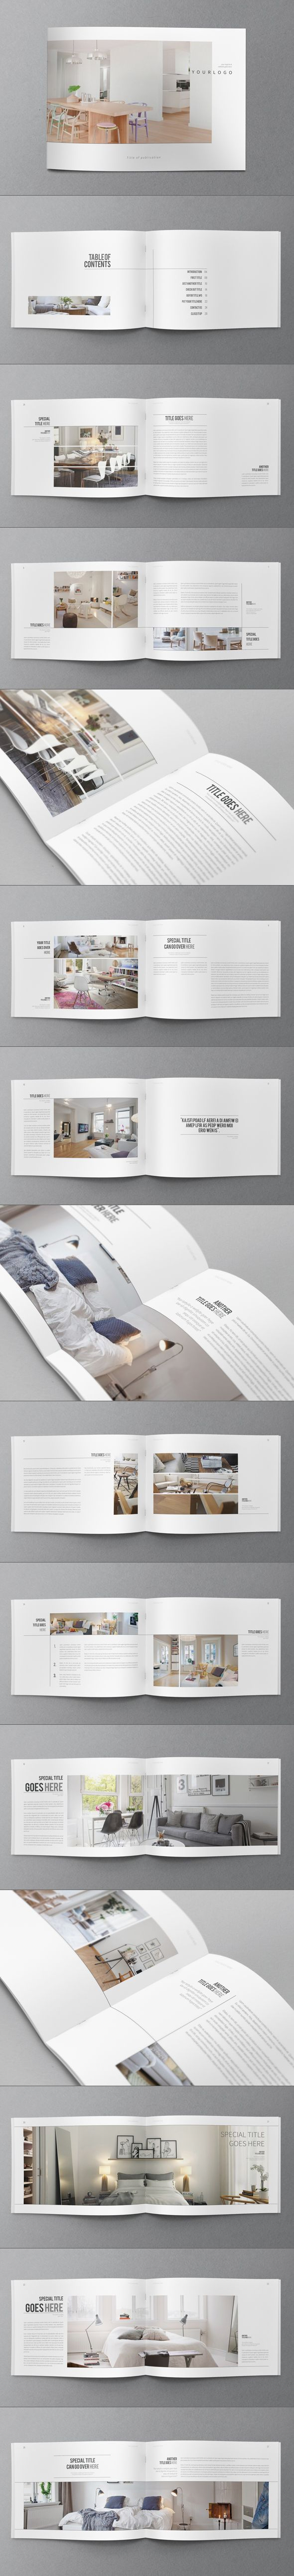 Minimal Interior Design Brochure. Download here: http://graphicriver.net/item/minimal-interior-design-brochure/8925678?ref=abradesign #design #brochure http://www.pinterest.com/chengyuanchieh